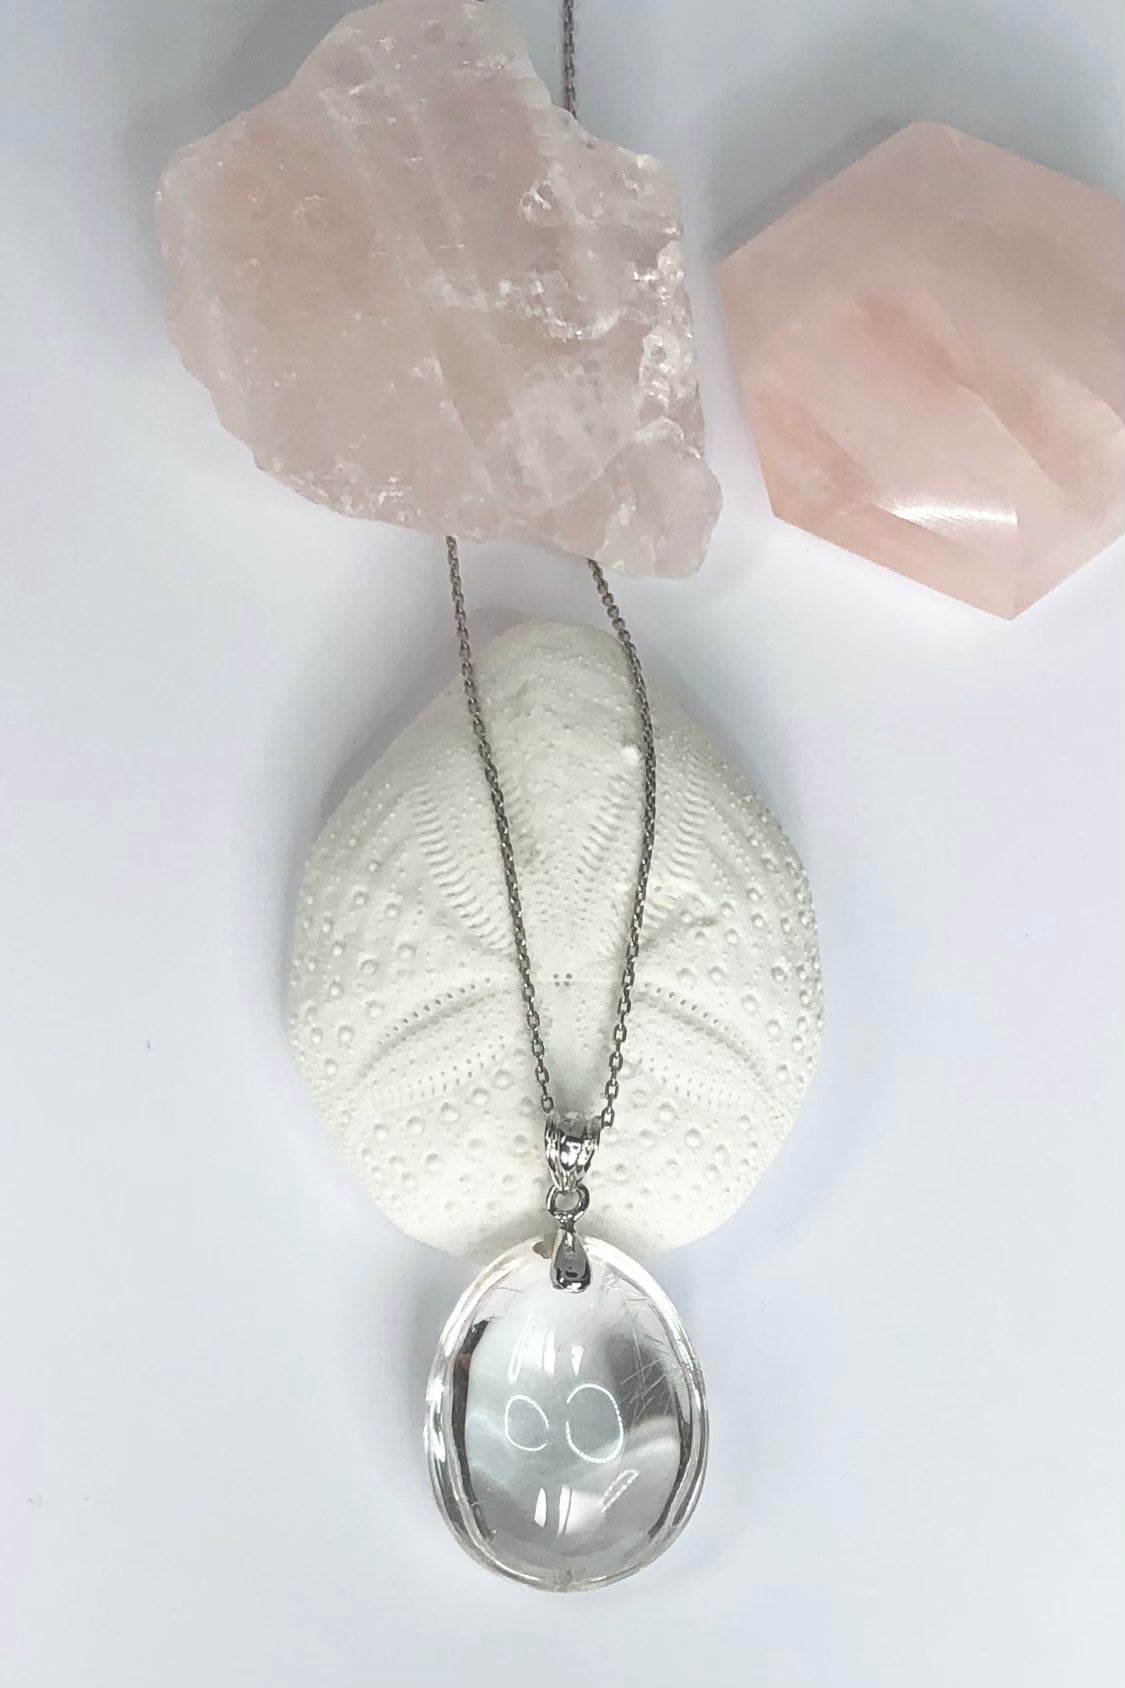 his pure and lovey natural crystal pendant is polished to a high shine, this stone is cut in a symmetrical oval shape with the delicate silvery coloured Rutile needles showing on one side.